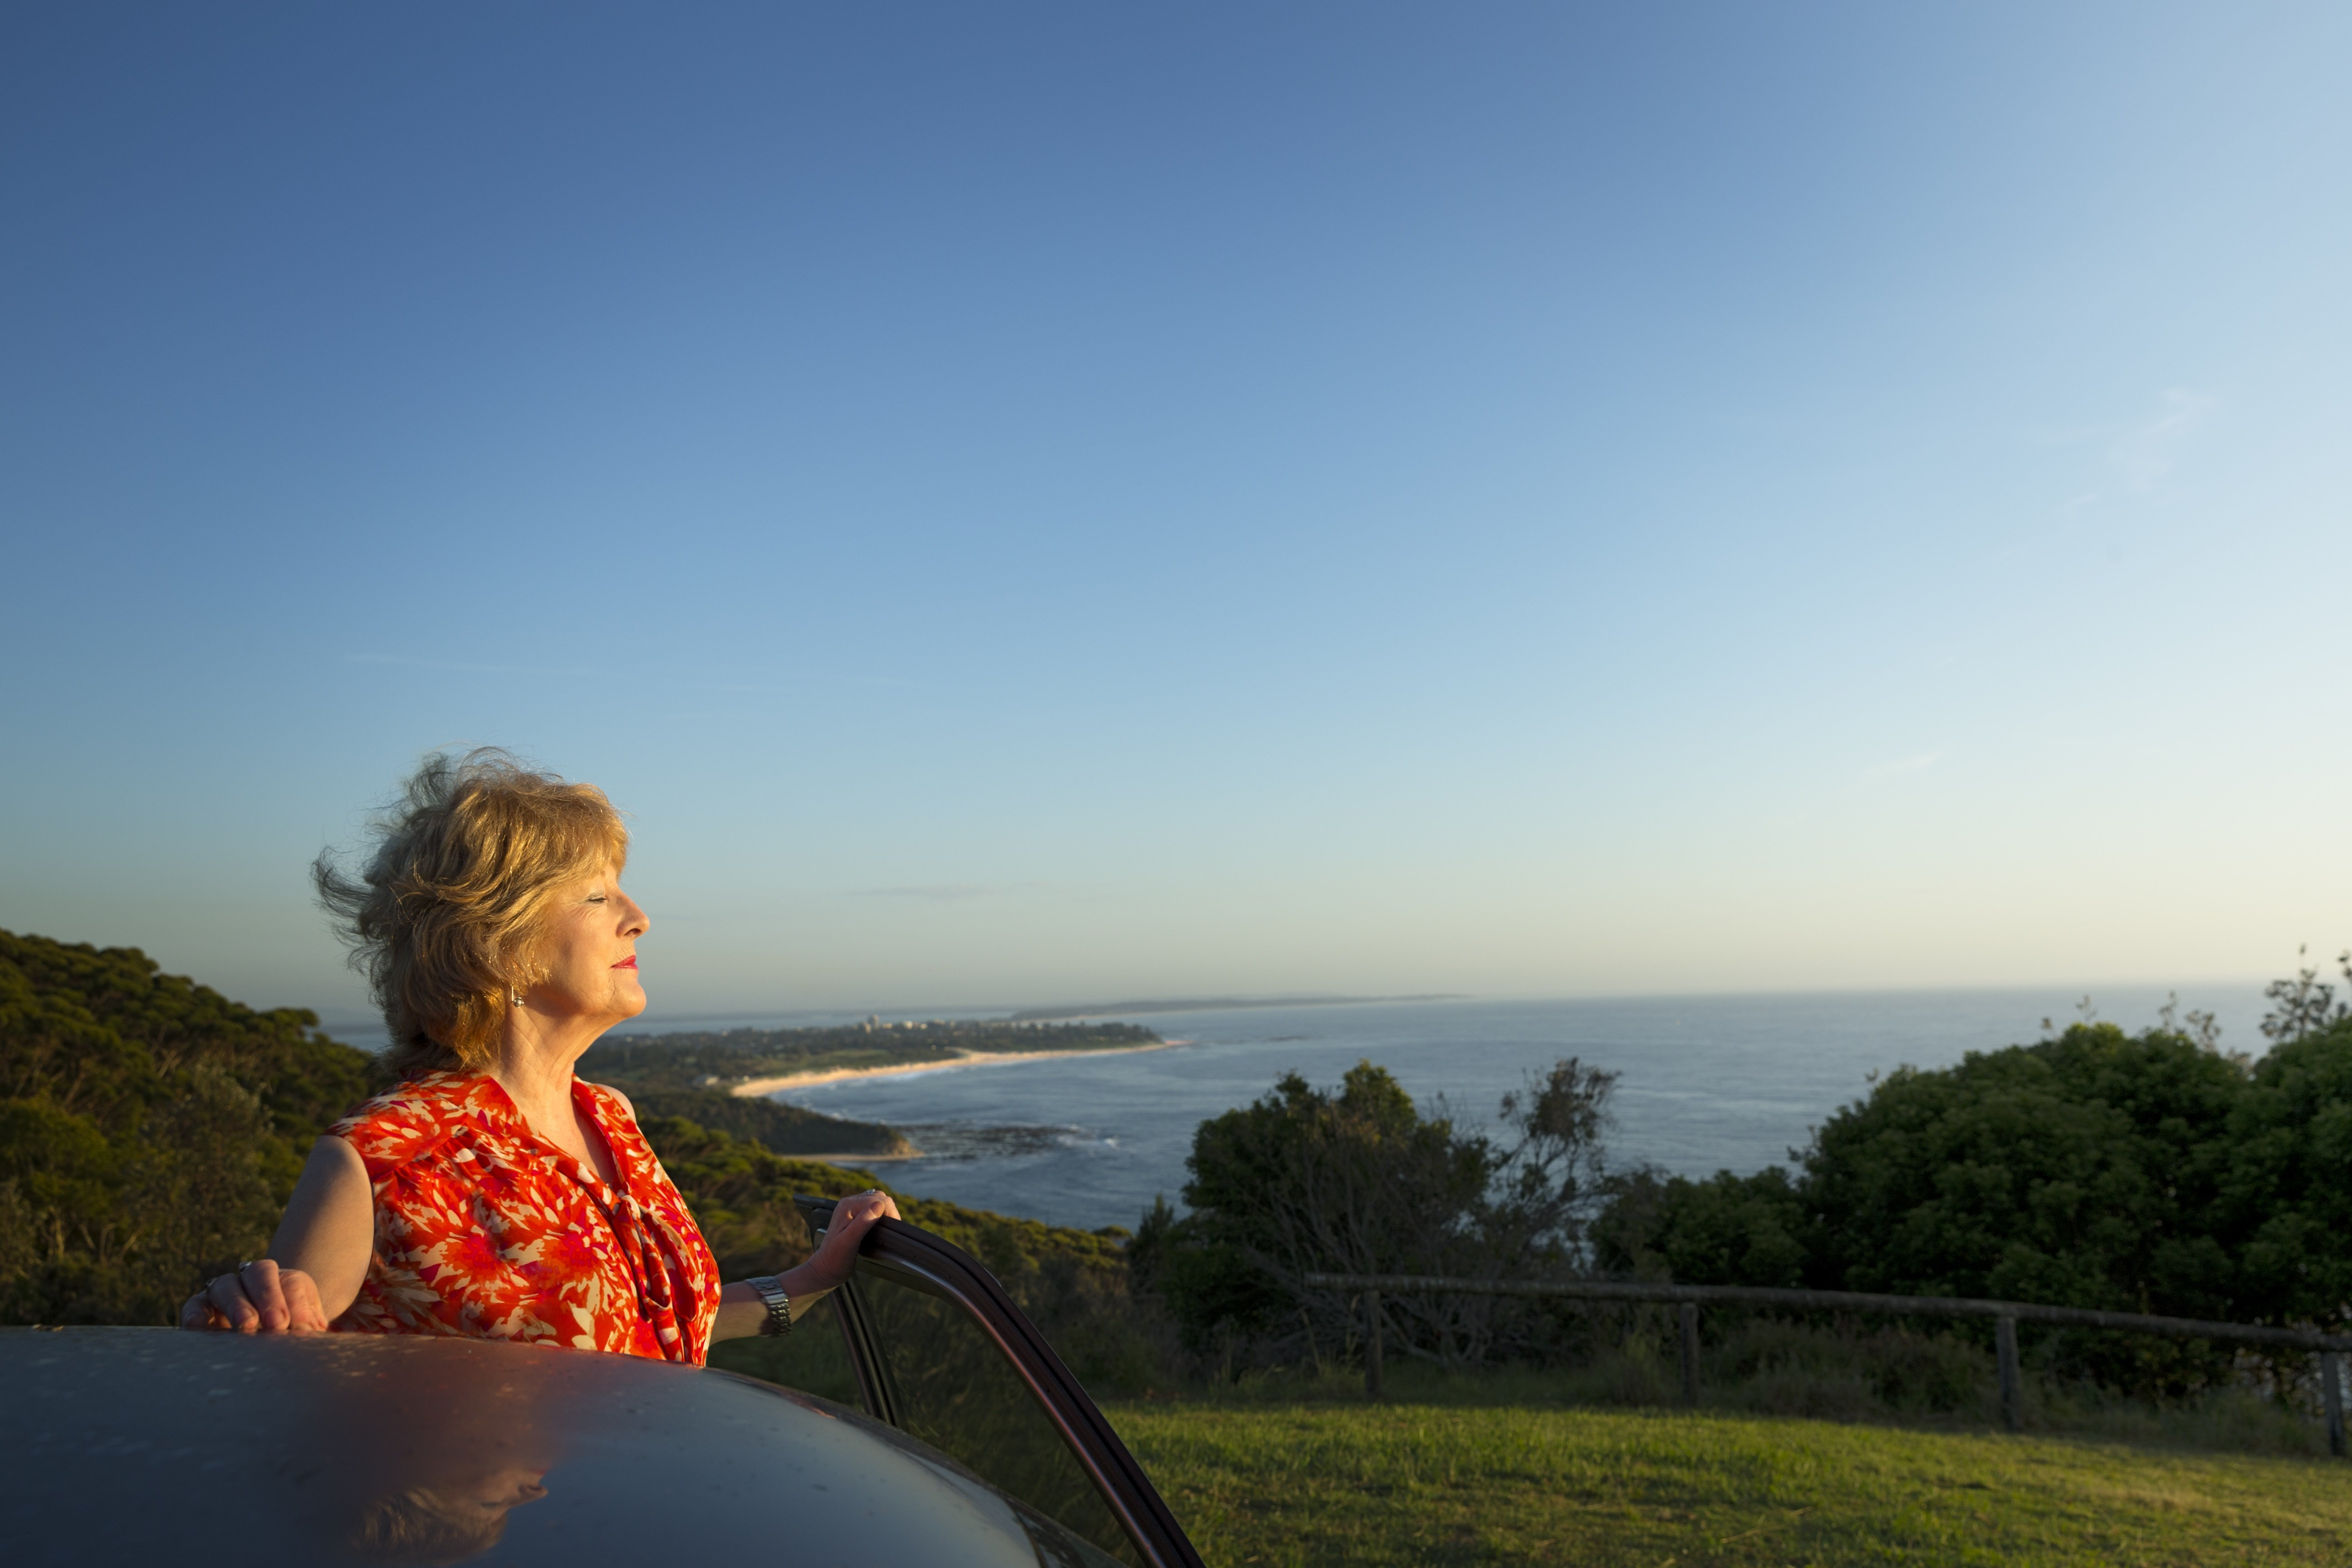 woman enjoying the view of the ocean and landscape